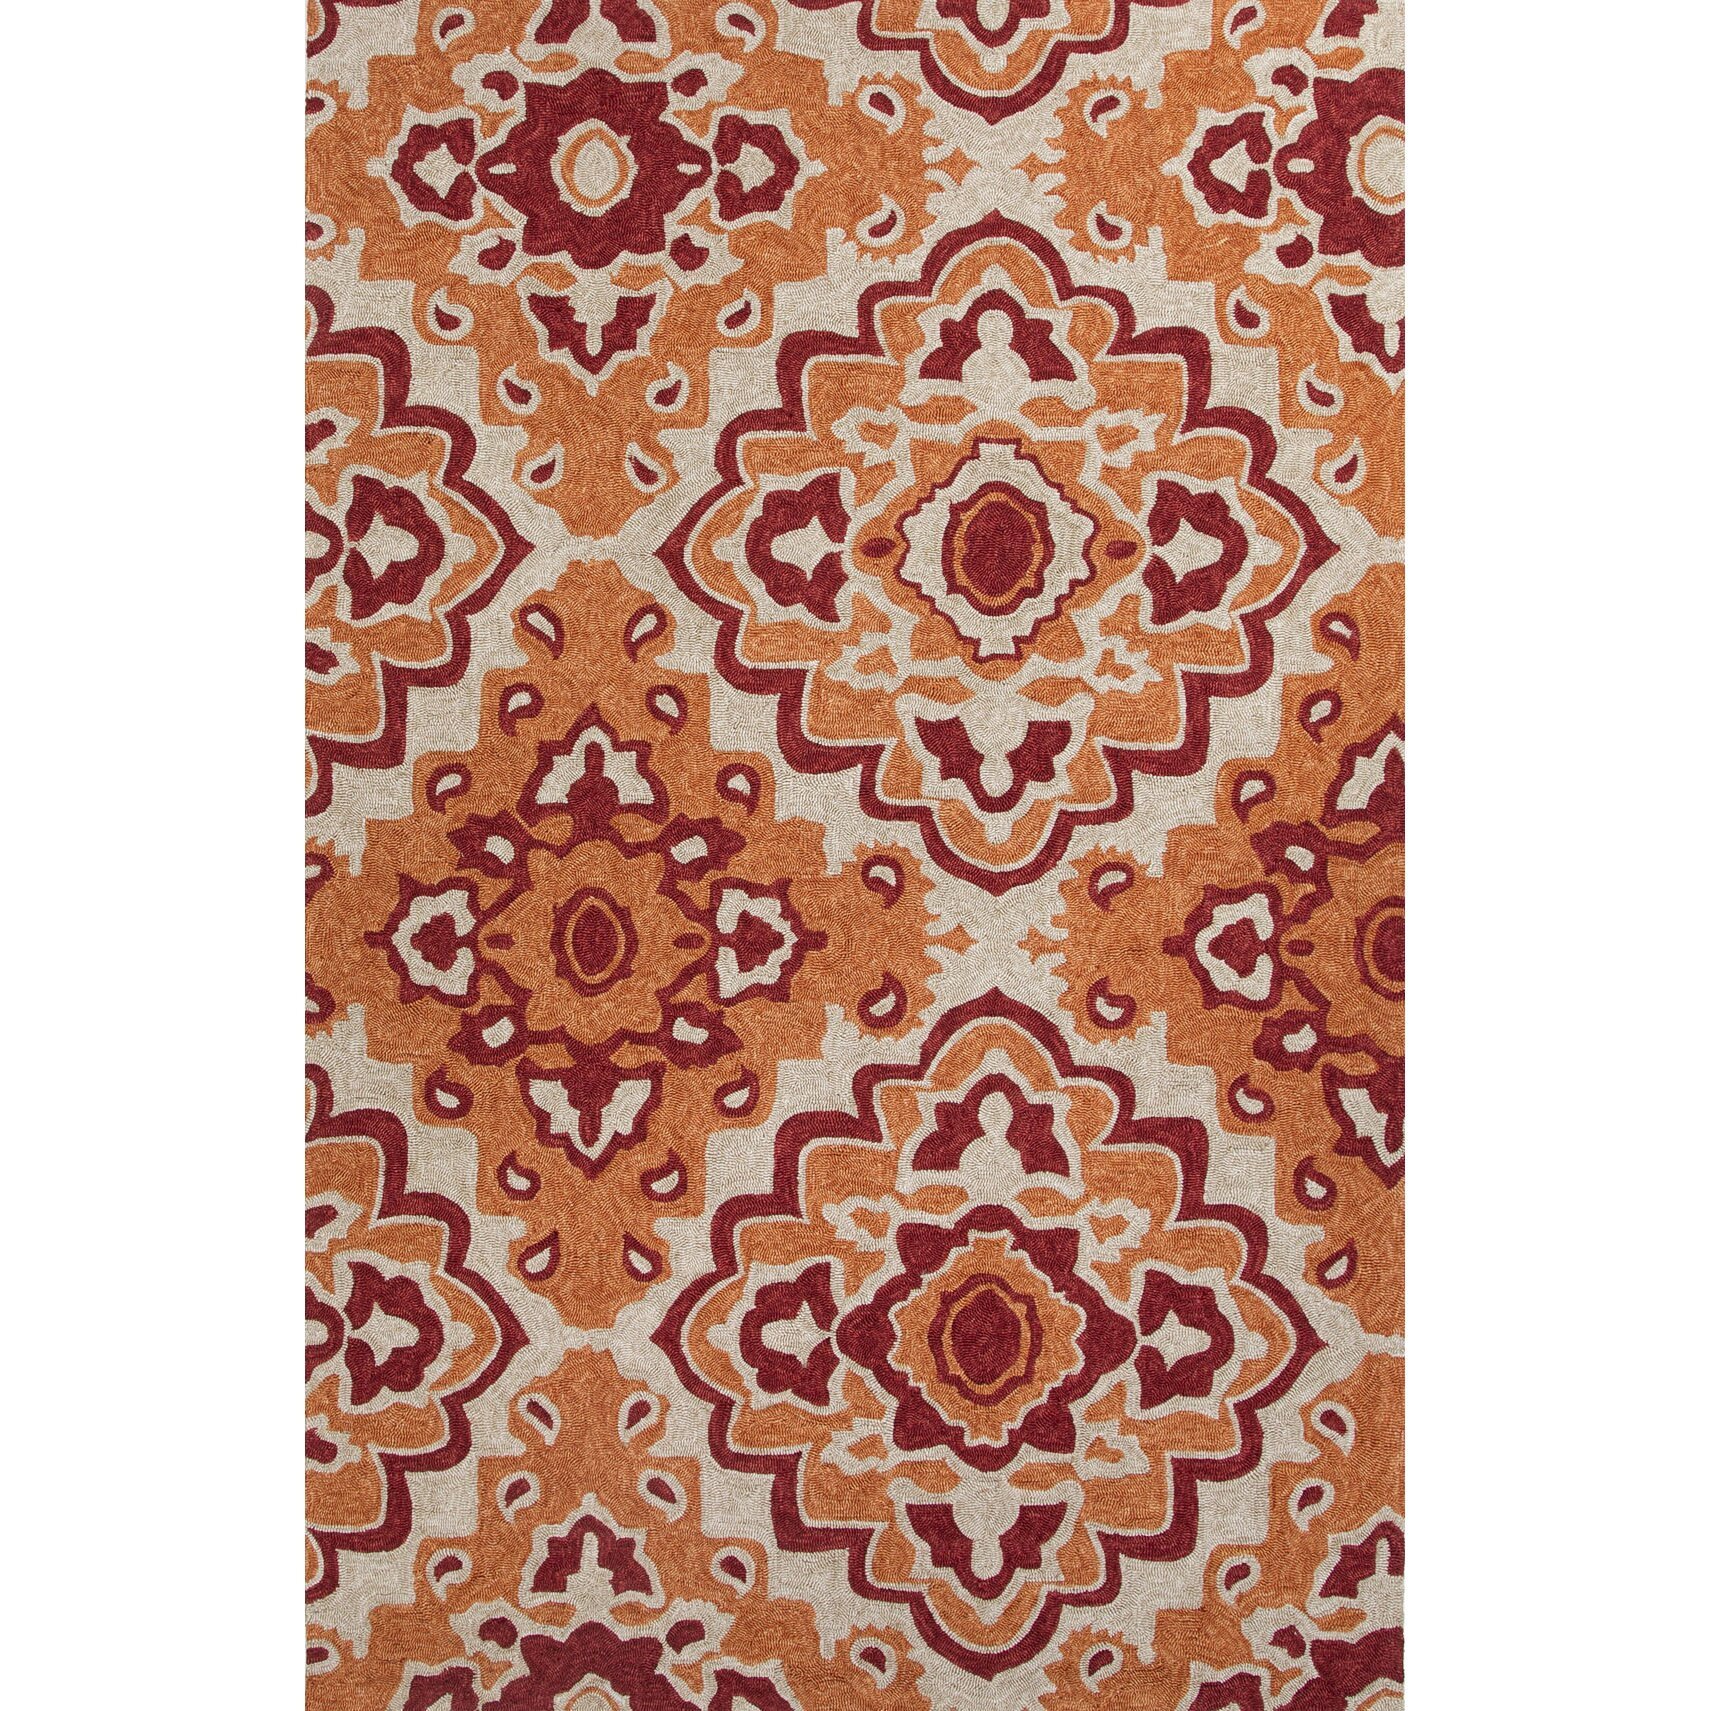 Catalina Orange Moroccan Indoor Outdoor Area Rug